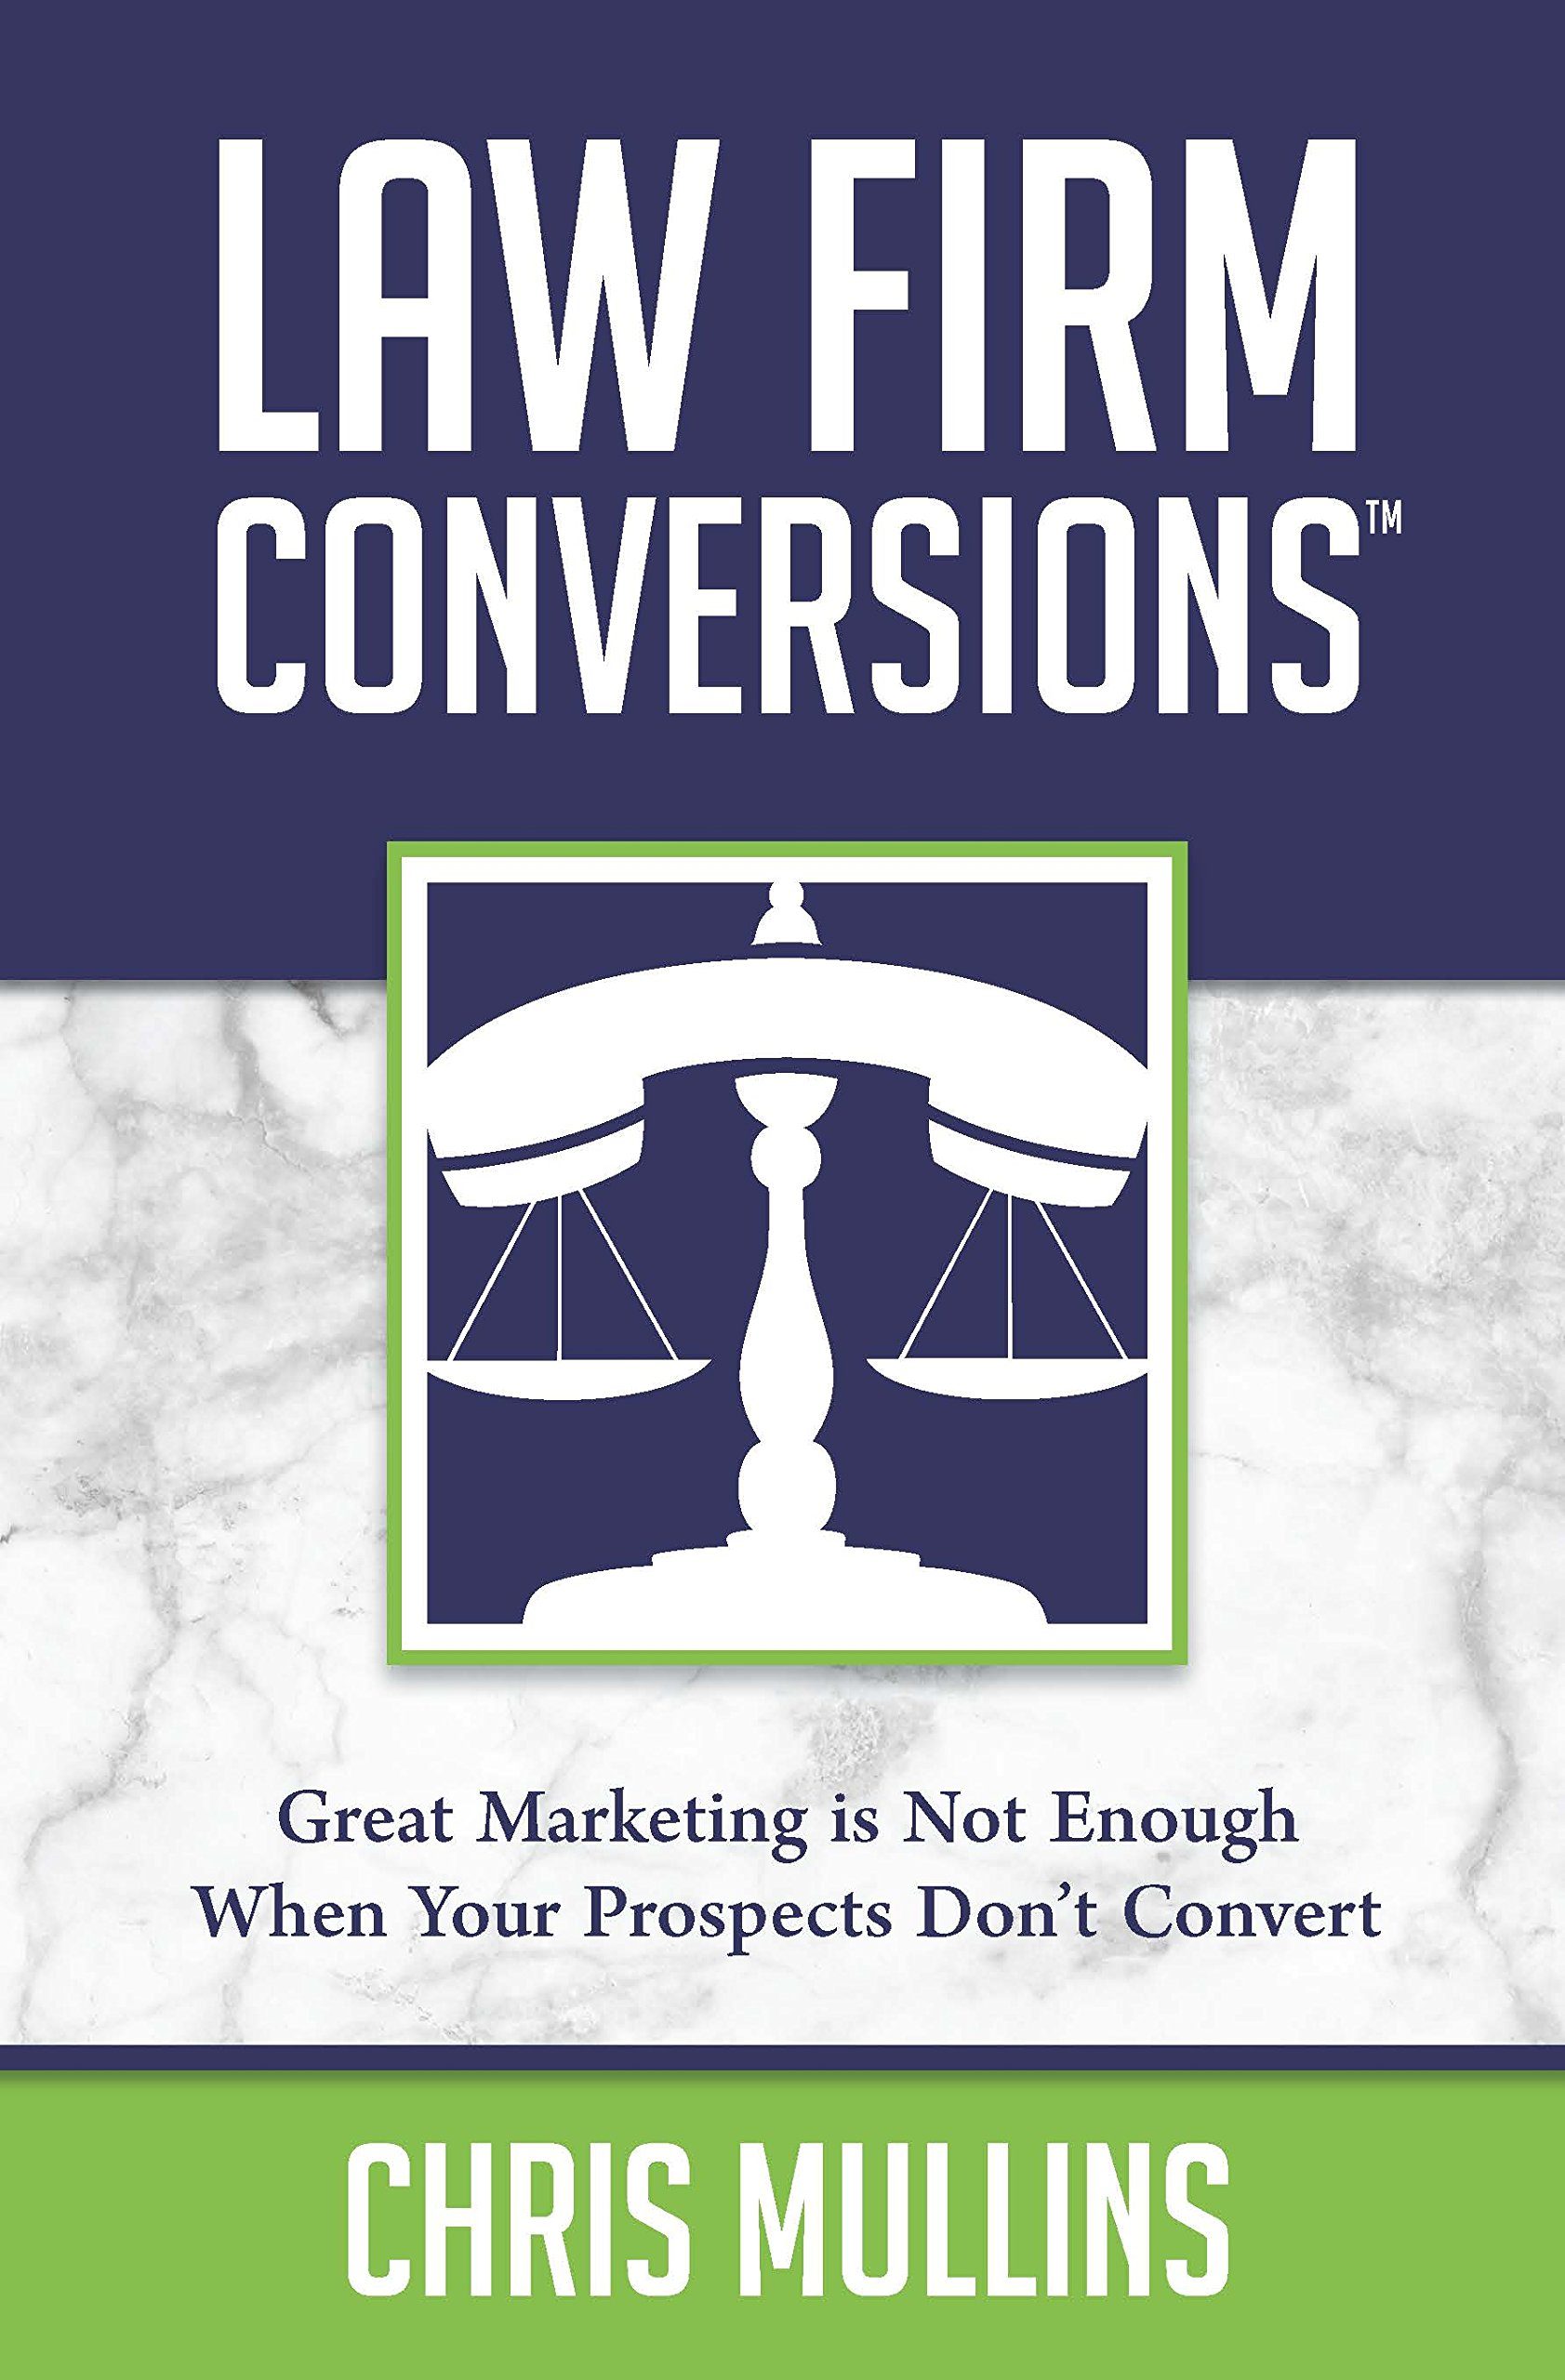 Law Firm Conversions: Great Marketing Is Not Enough When Your Prospects Don't Convert!